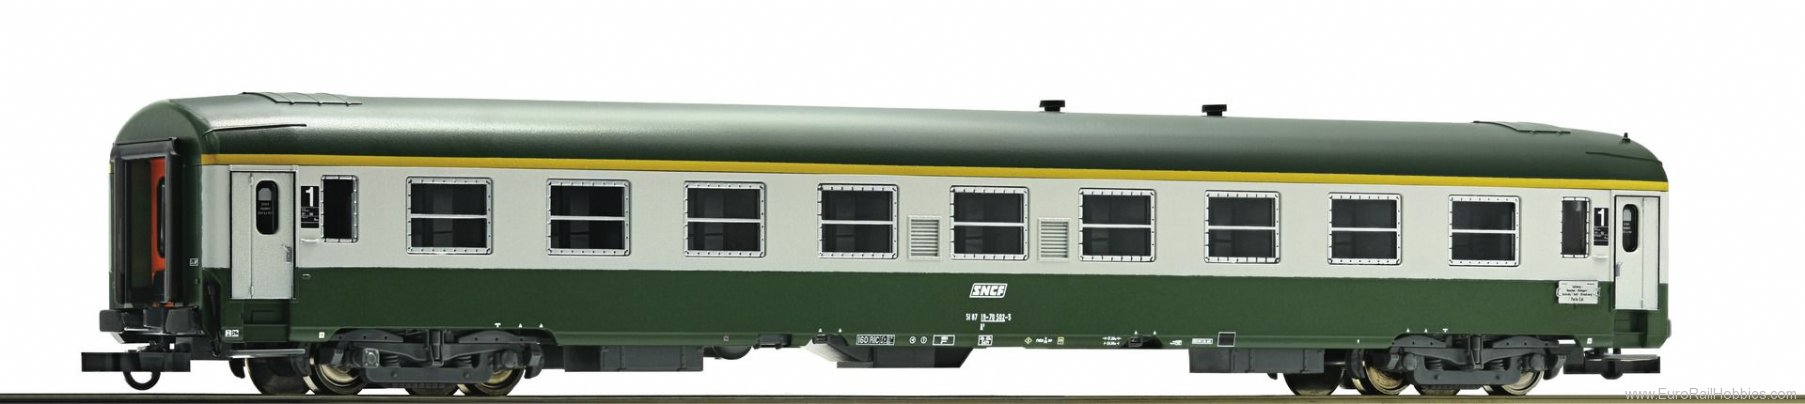 Roco 64650 2nd class express train passenger car, SNCF